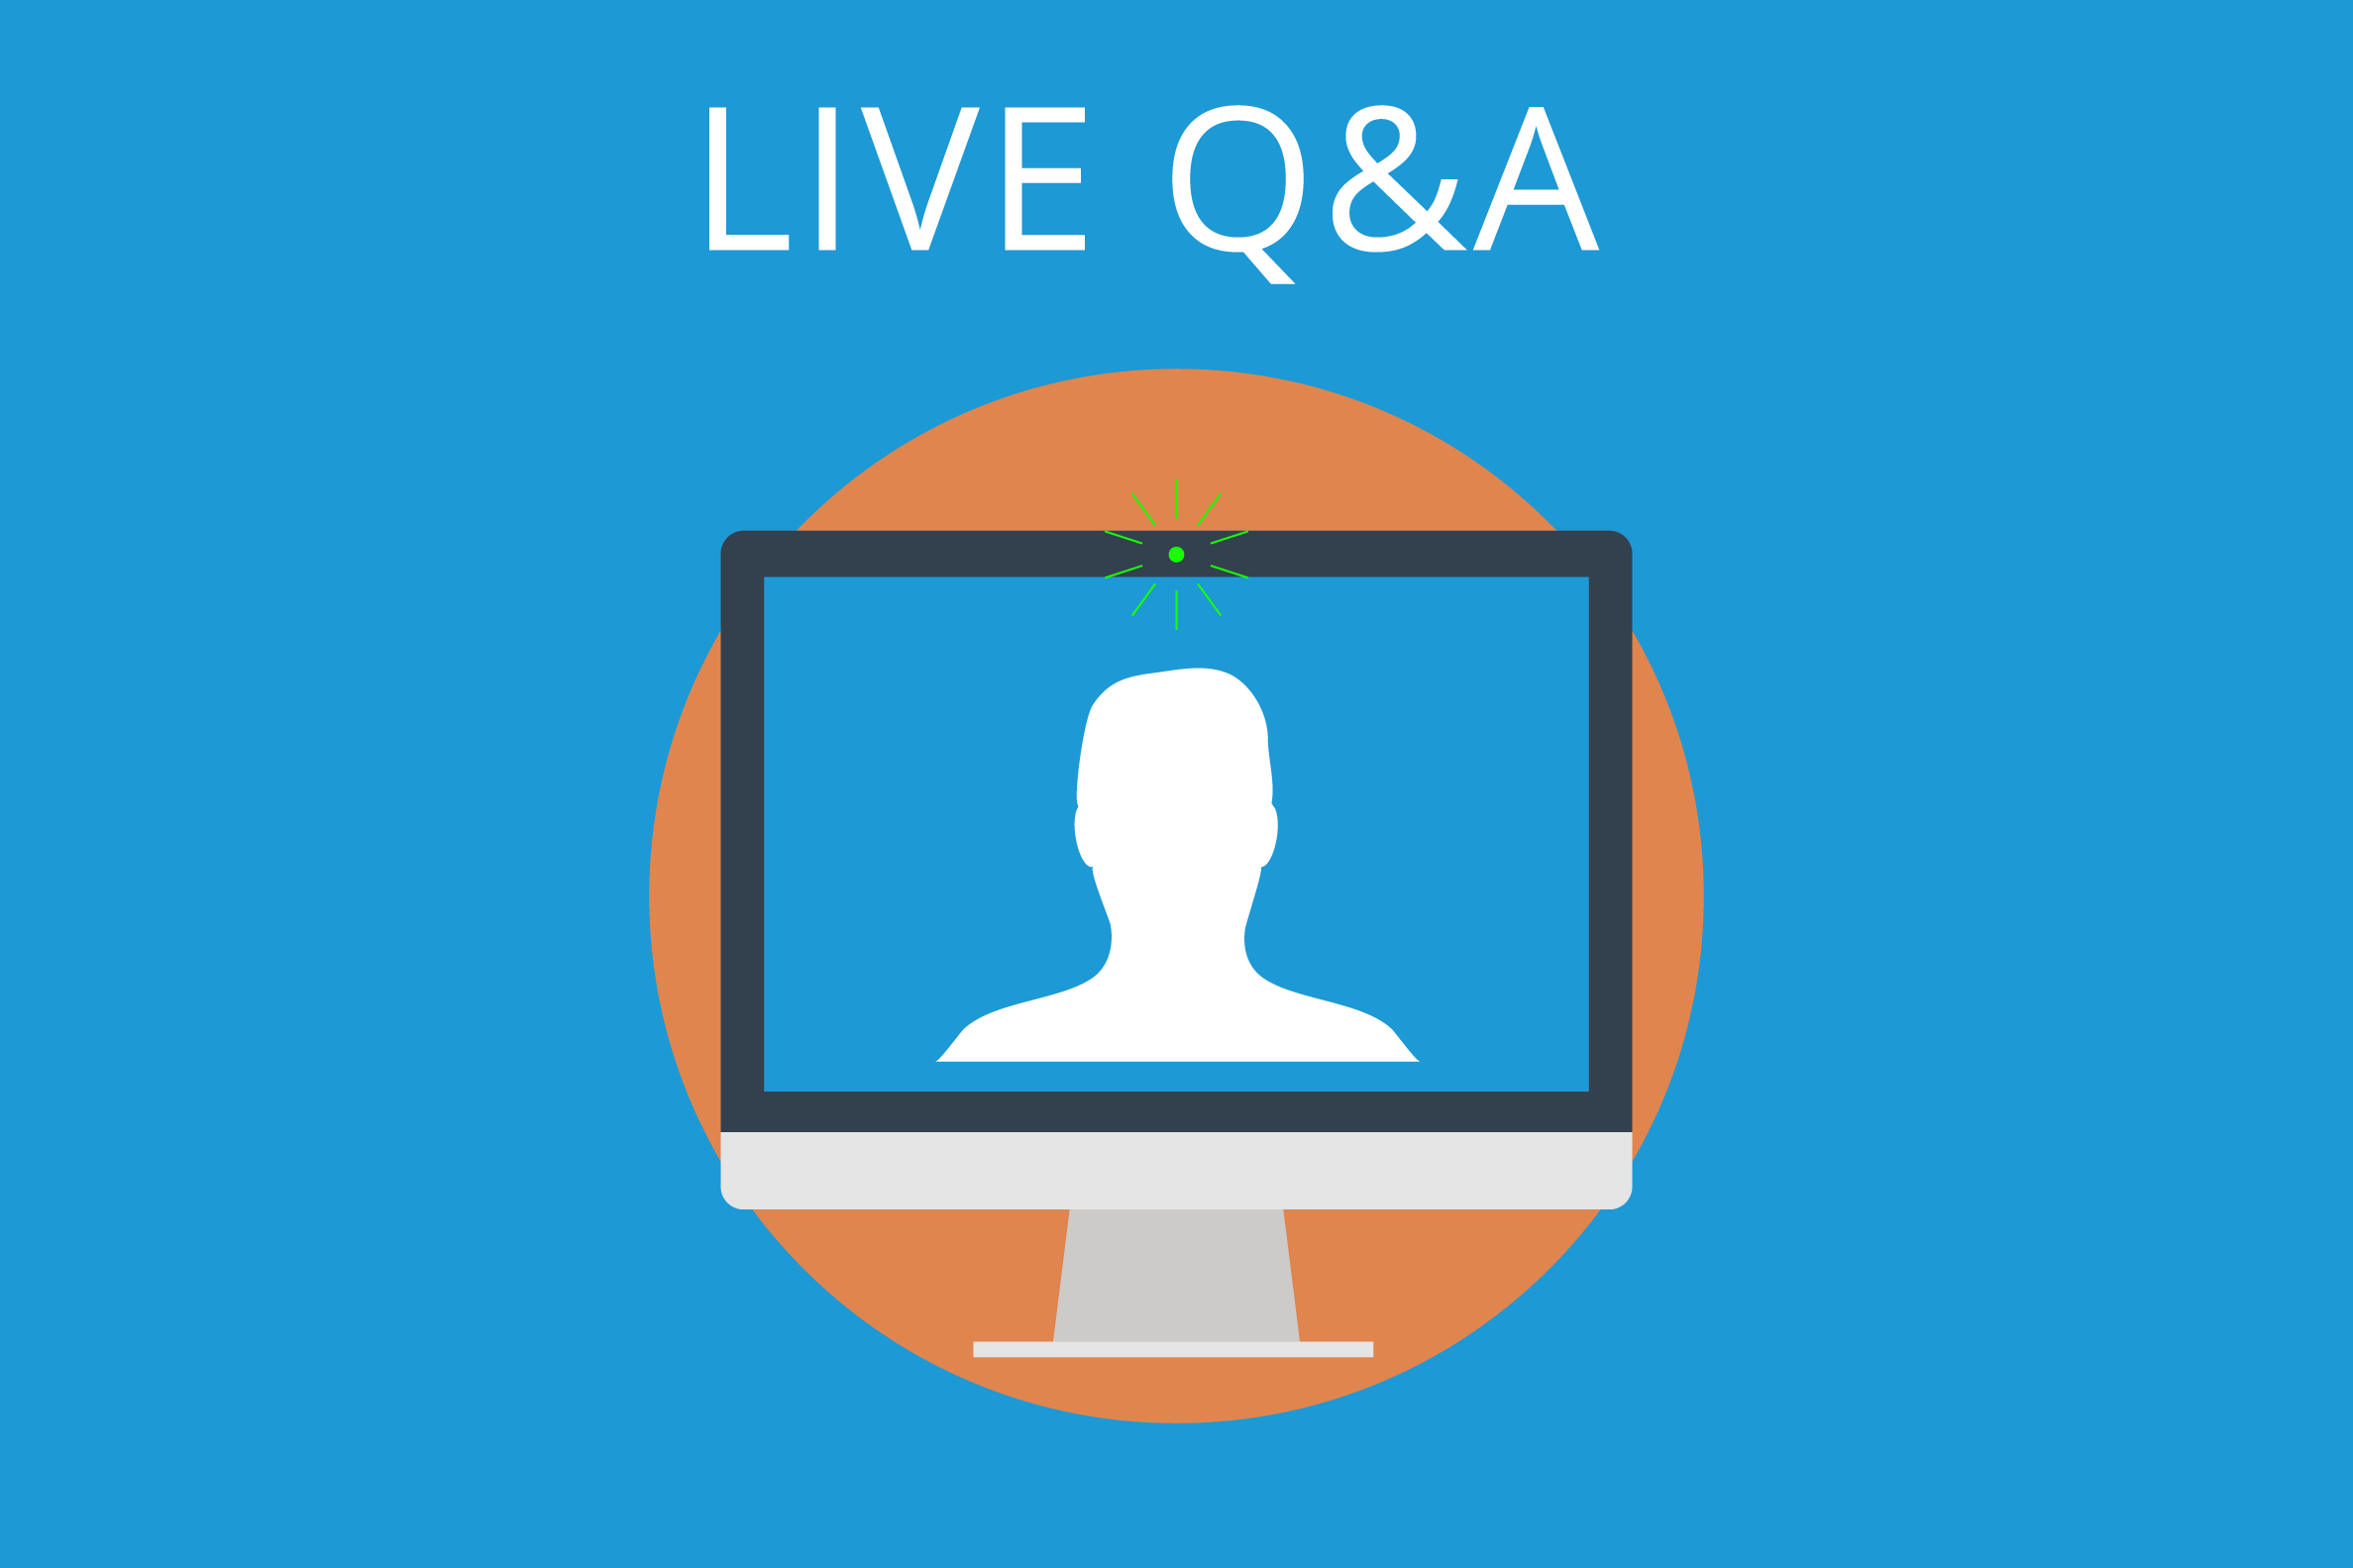 blue rectangle with a computer and it says Live Q&A